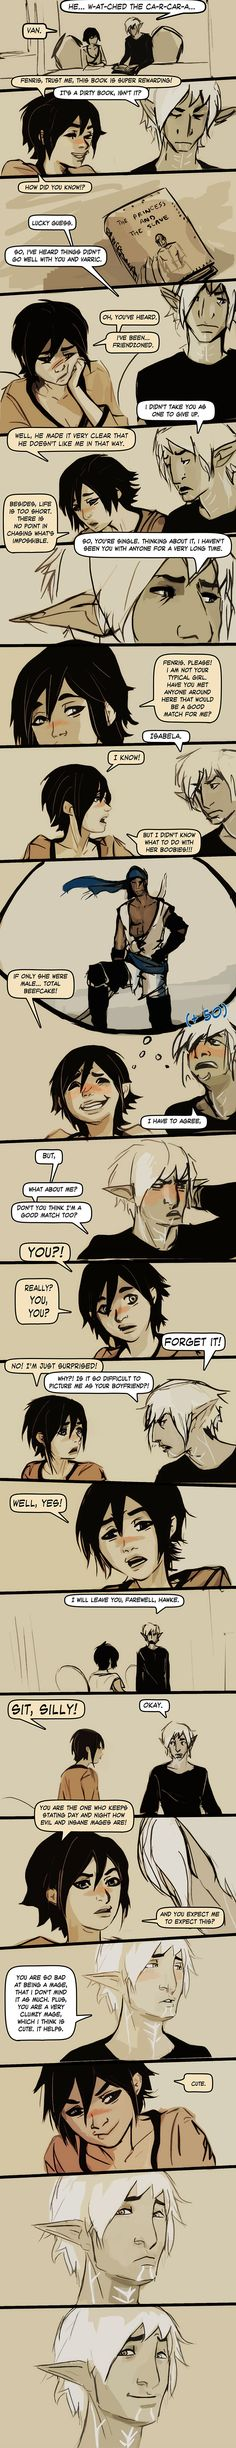 Fenris and Hawke 01 by chakhabit on deviantART